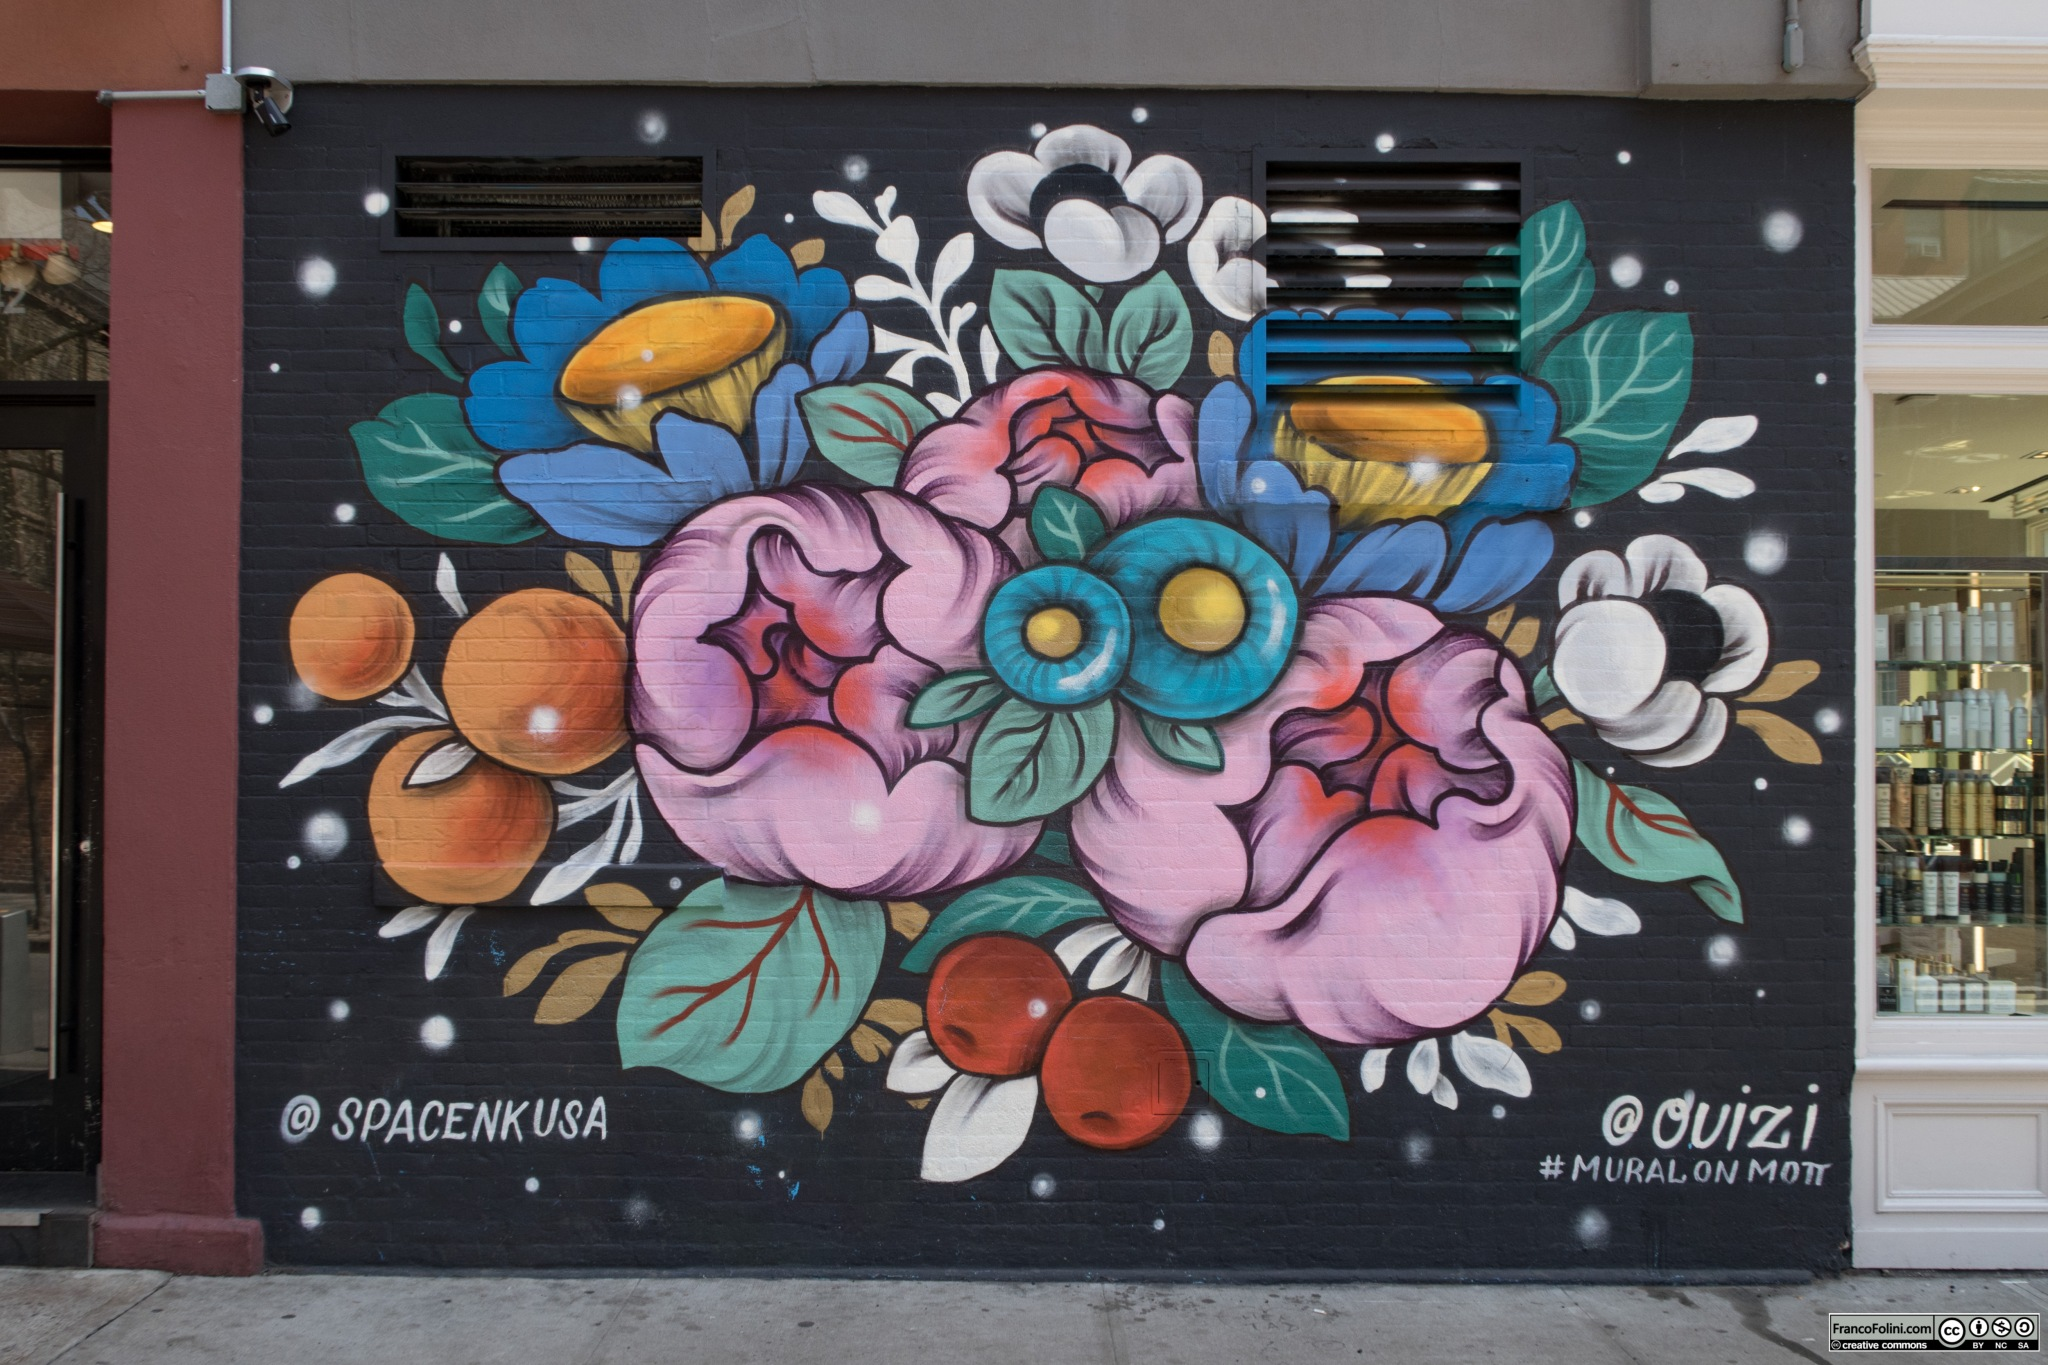 Mural by Ouizi and SpaceNkUsa on Mott Street, Manhattan New York